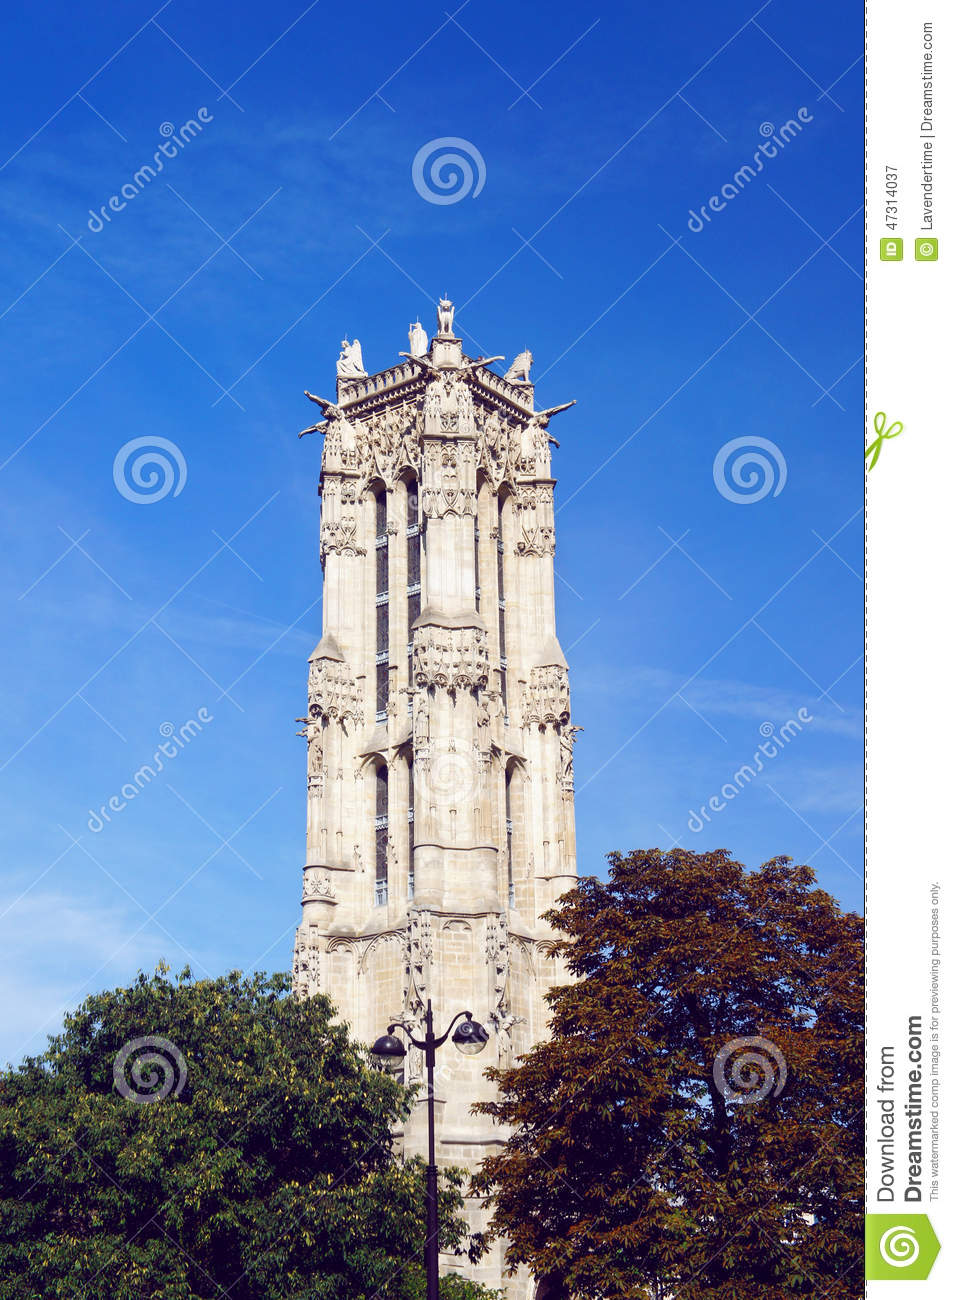 saint jacques tower in paris stock image image of tree touristic 47314037. Black Bedroom Furniture Sets. Home Design Ideas